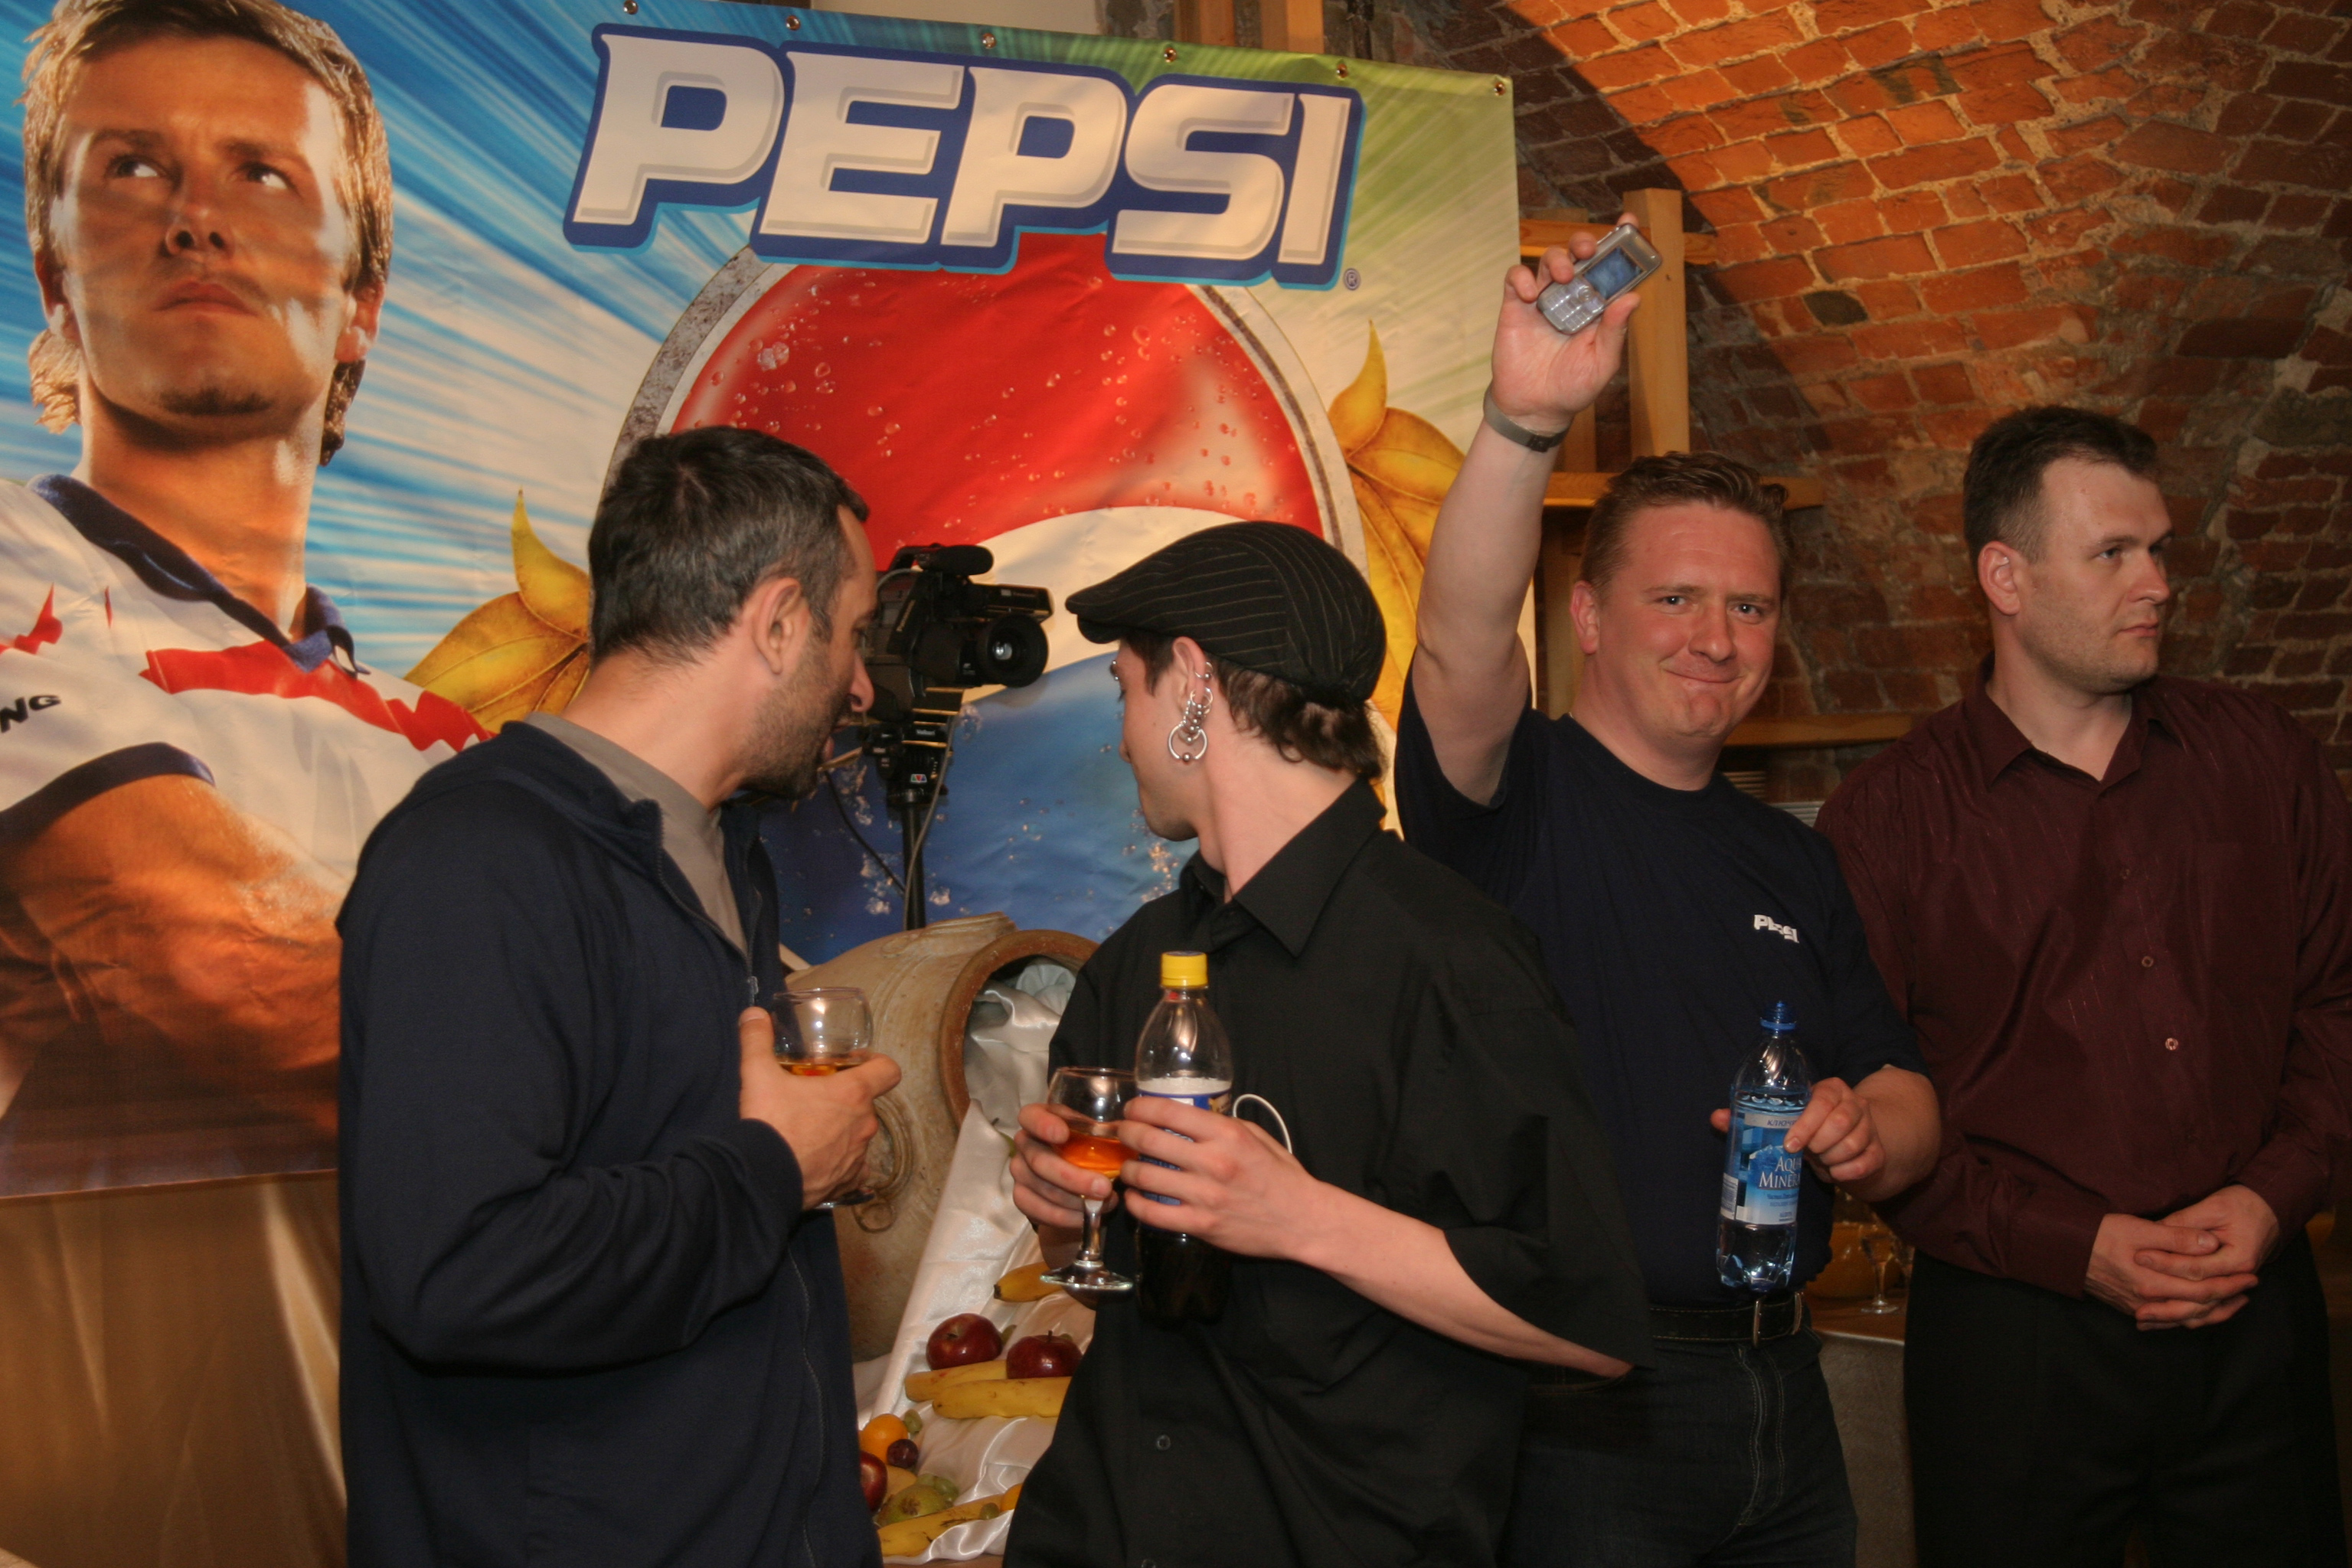 kentler.ru_Pepsi_corporative_04